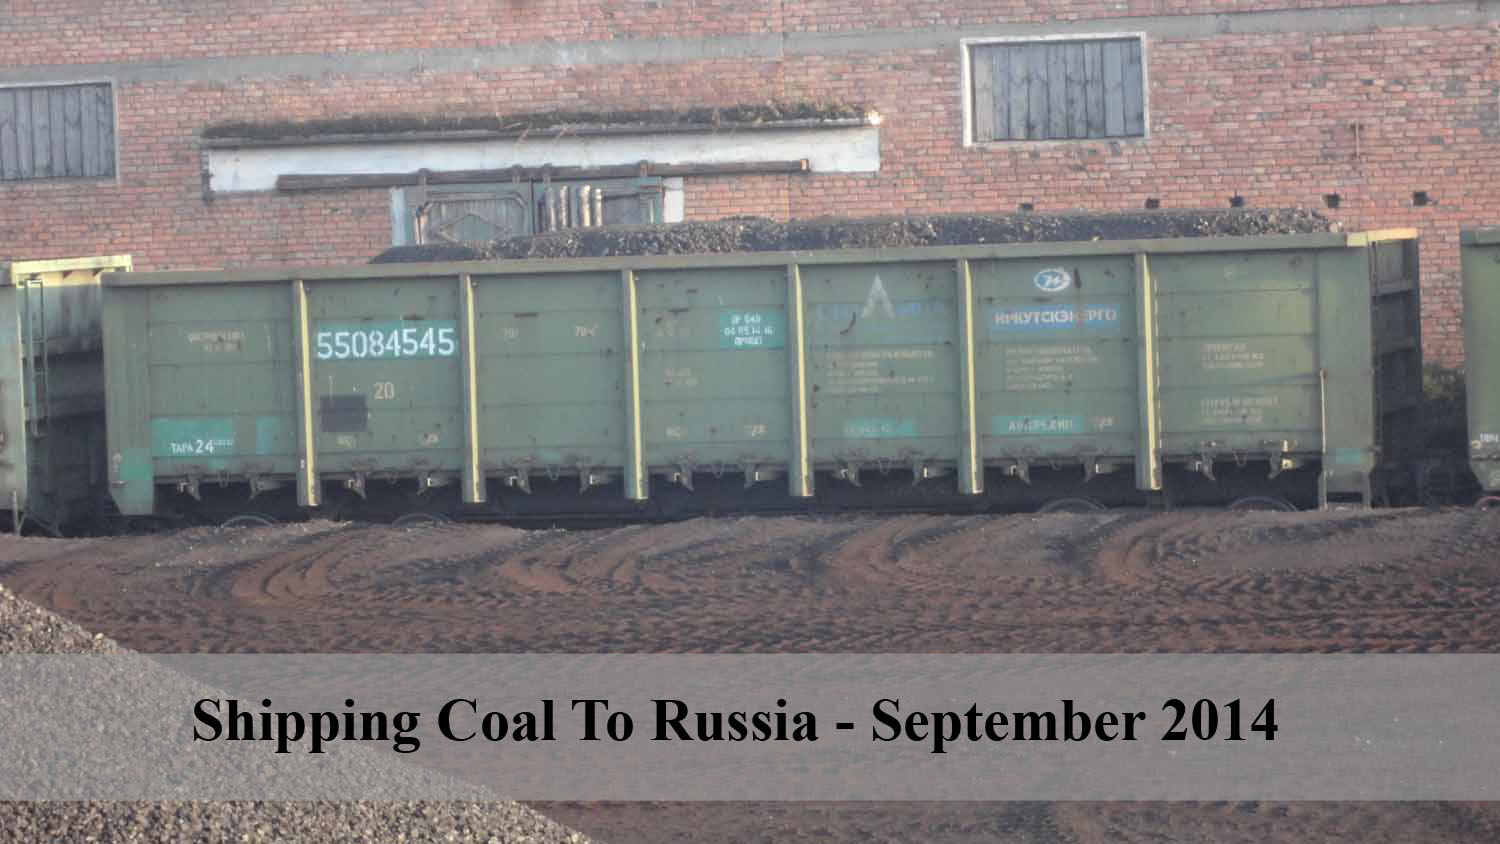 Shipping Coal to Russia - September 2014